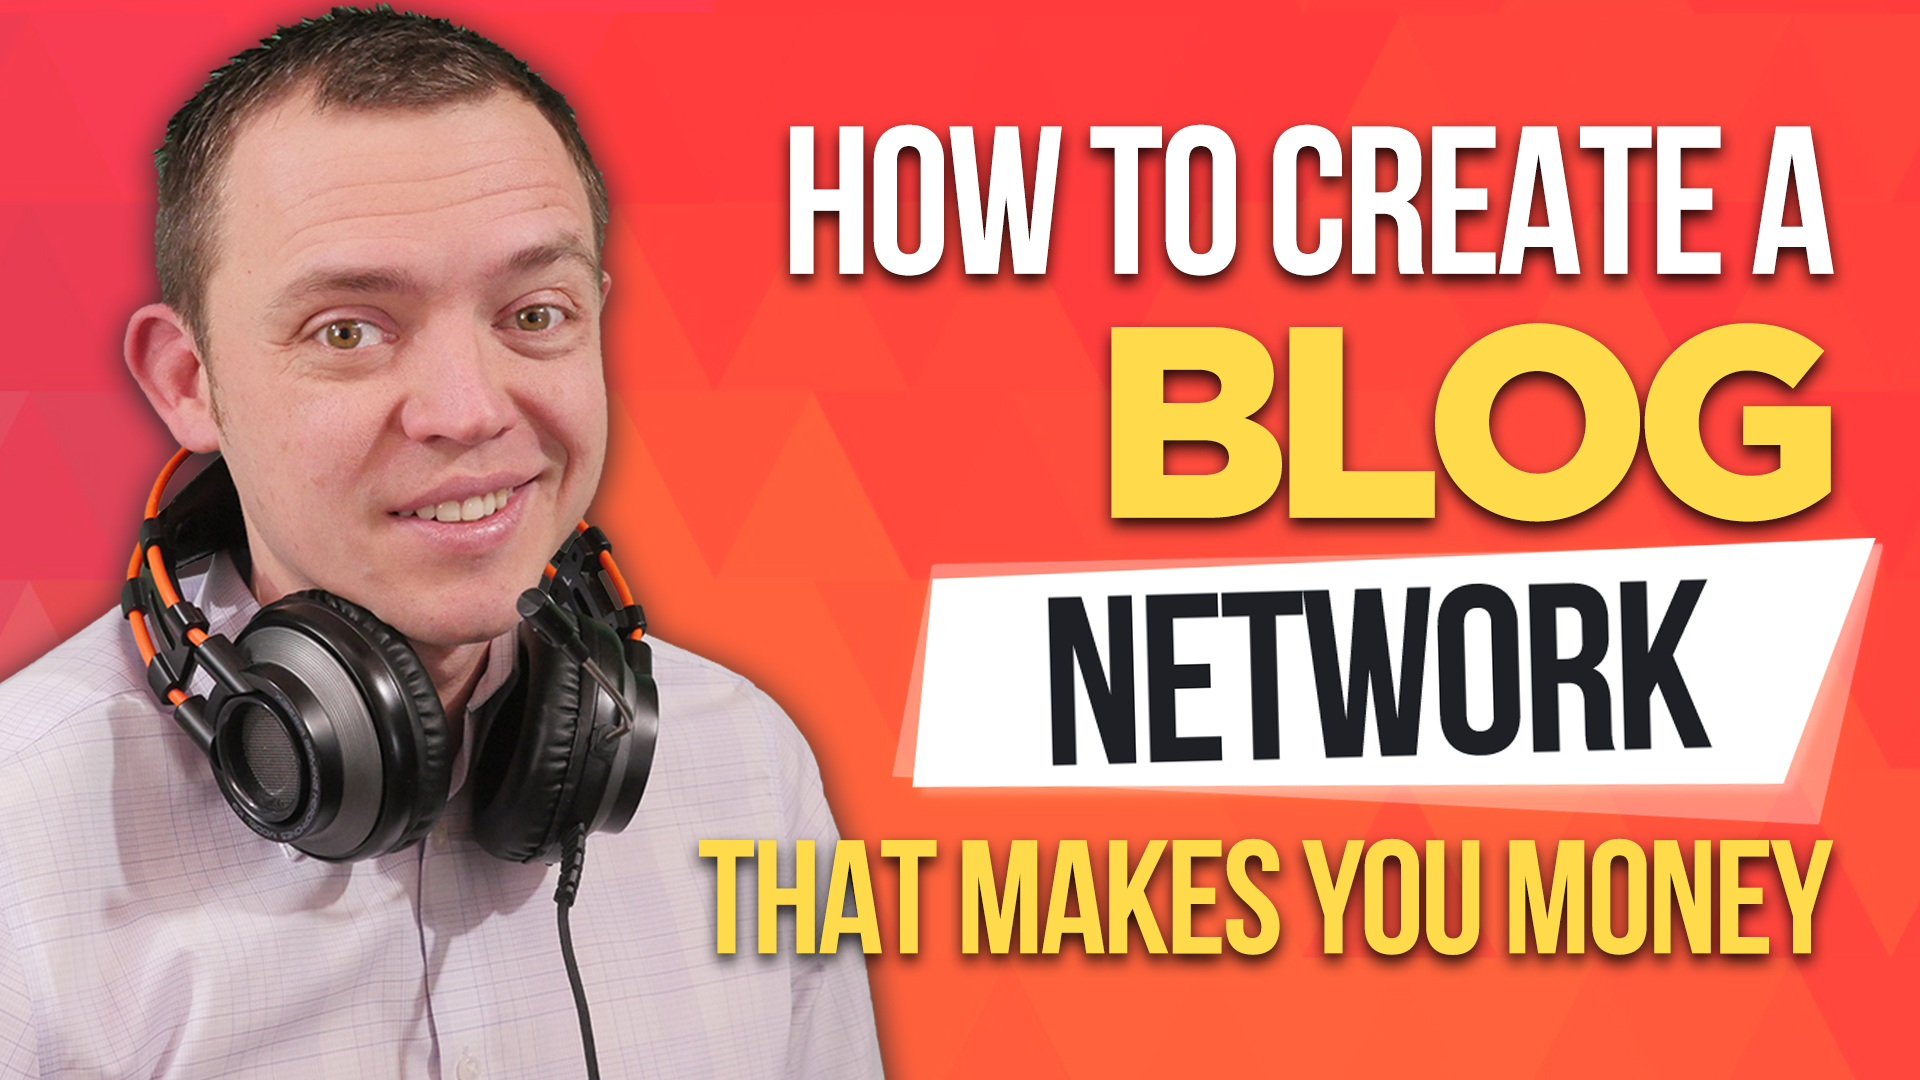 Create a Blog Network that Makes You Money